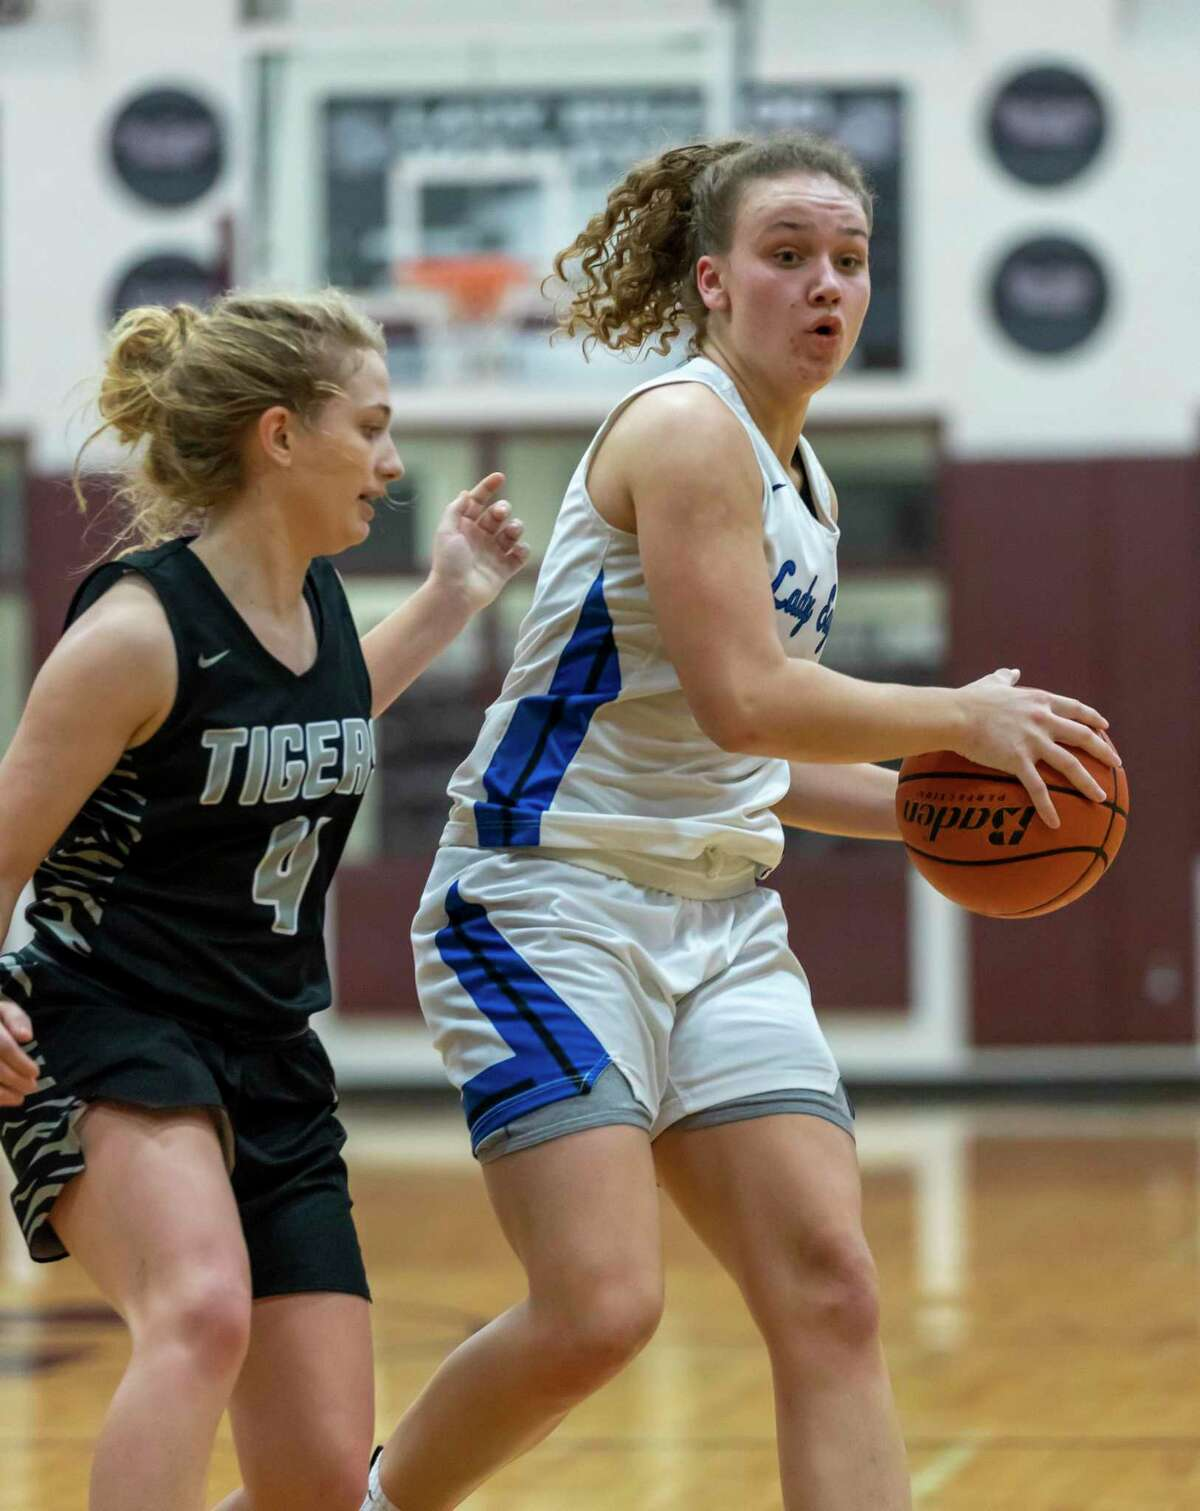 New Caney power forward Abigail Lynch (30) protects the ball from A&M consolidated guard Claire Sisco (4) in a Region III-5A bi-district girls basketball playoff during the second half at Magnolia High School in Magnolia, Tuesday, Feb. 18, 2020.